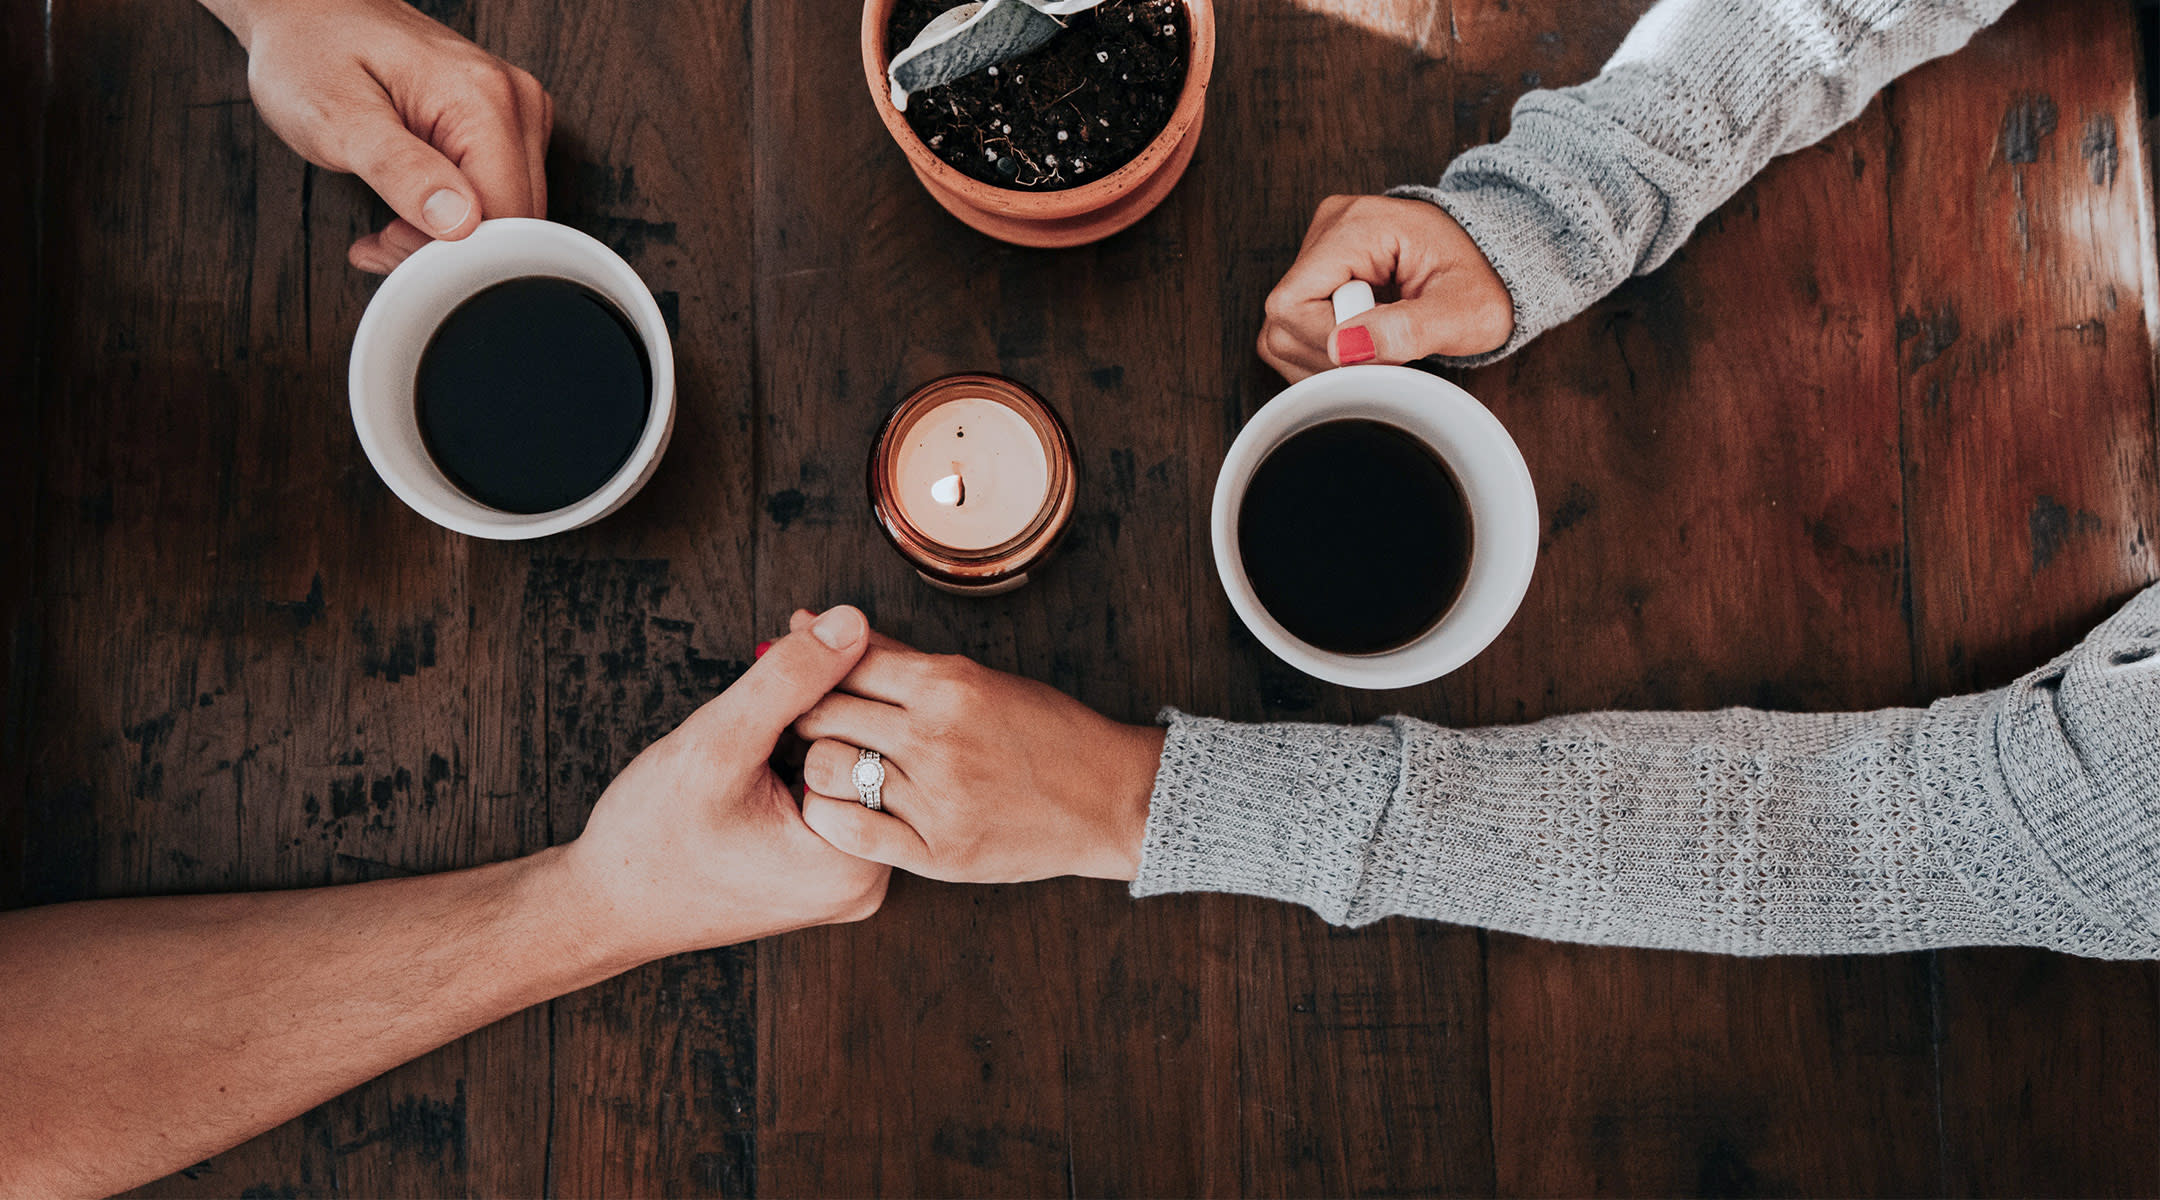 sad couple holding hands across table with coffee